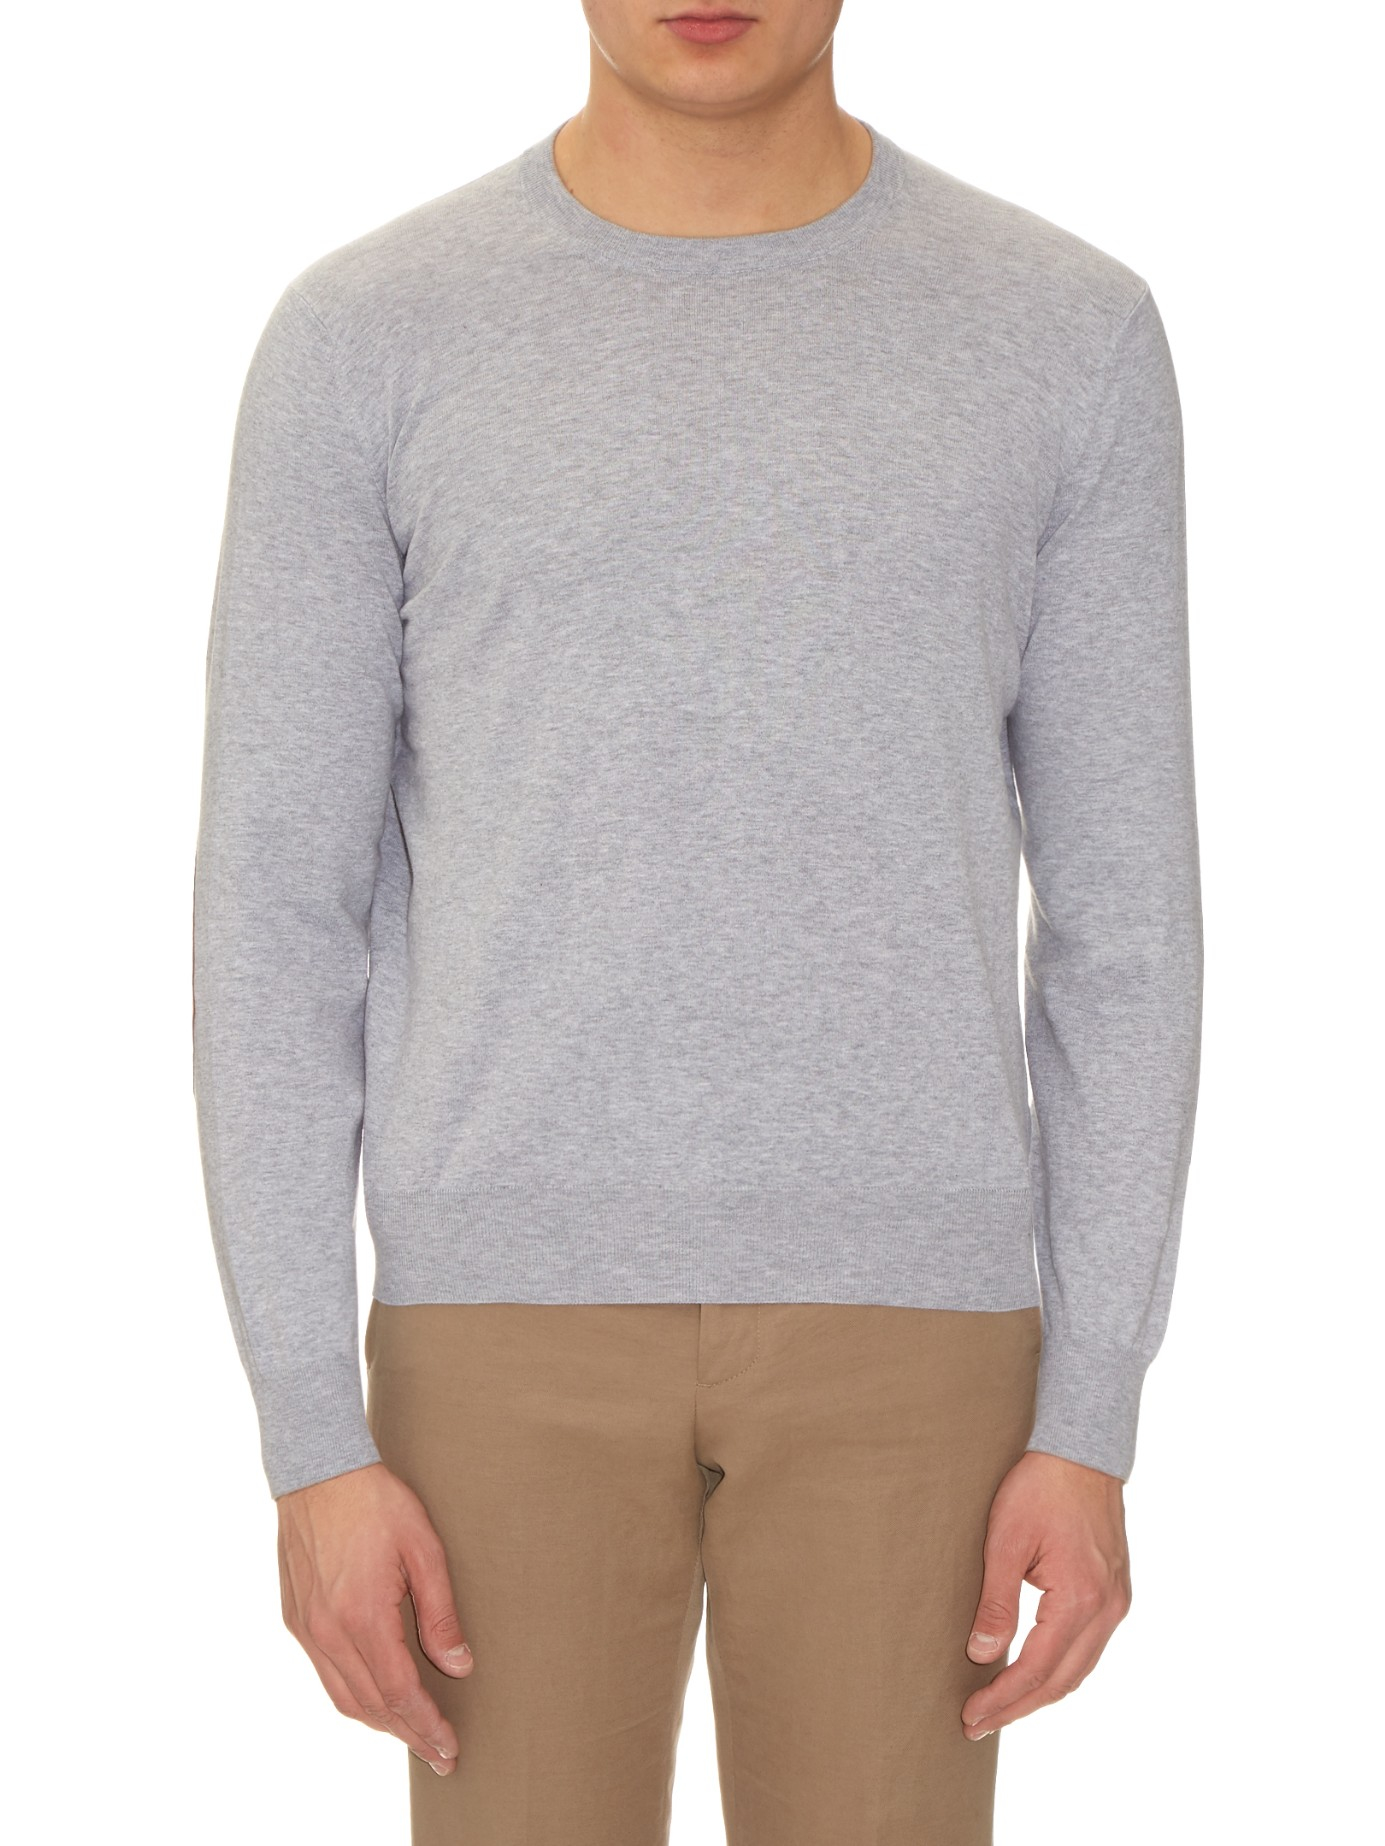 Brunello cucinelli Elbow-patch Cotton Sweater in Gray for Men | Lyst